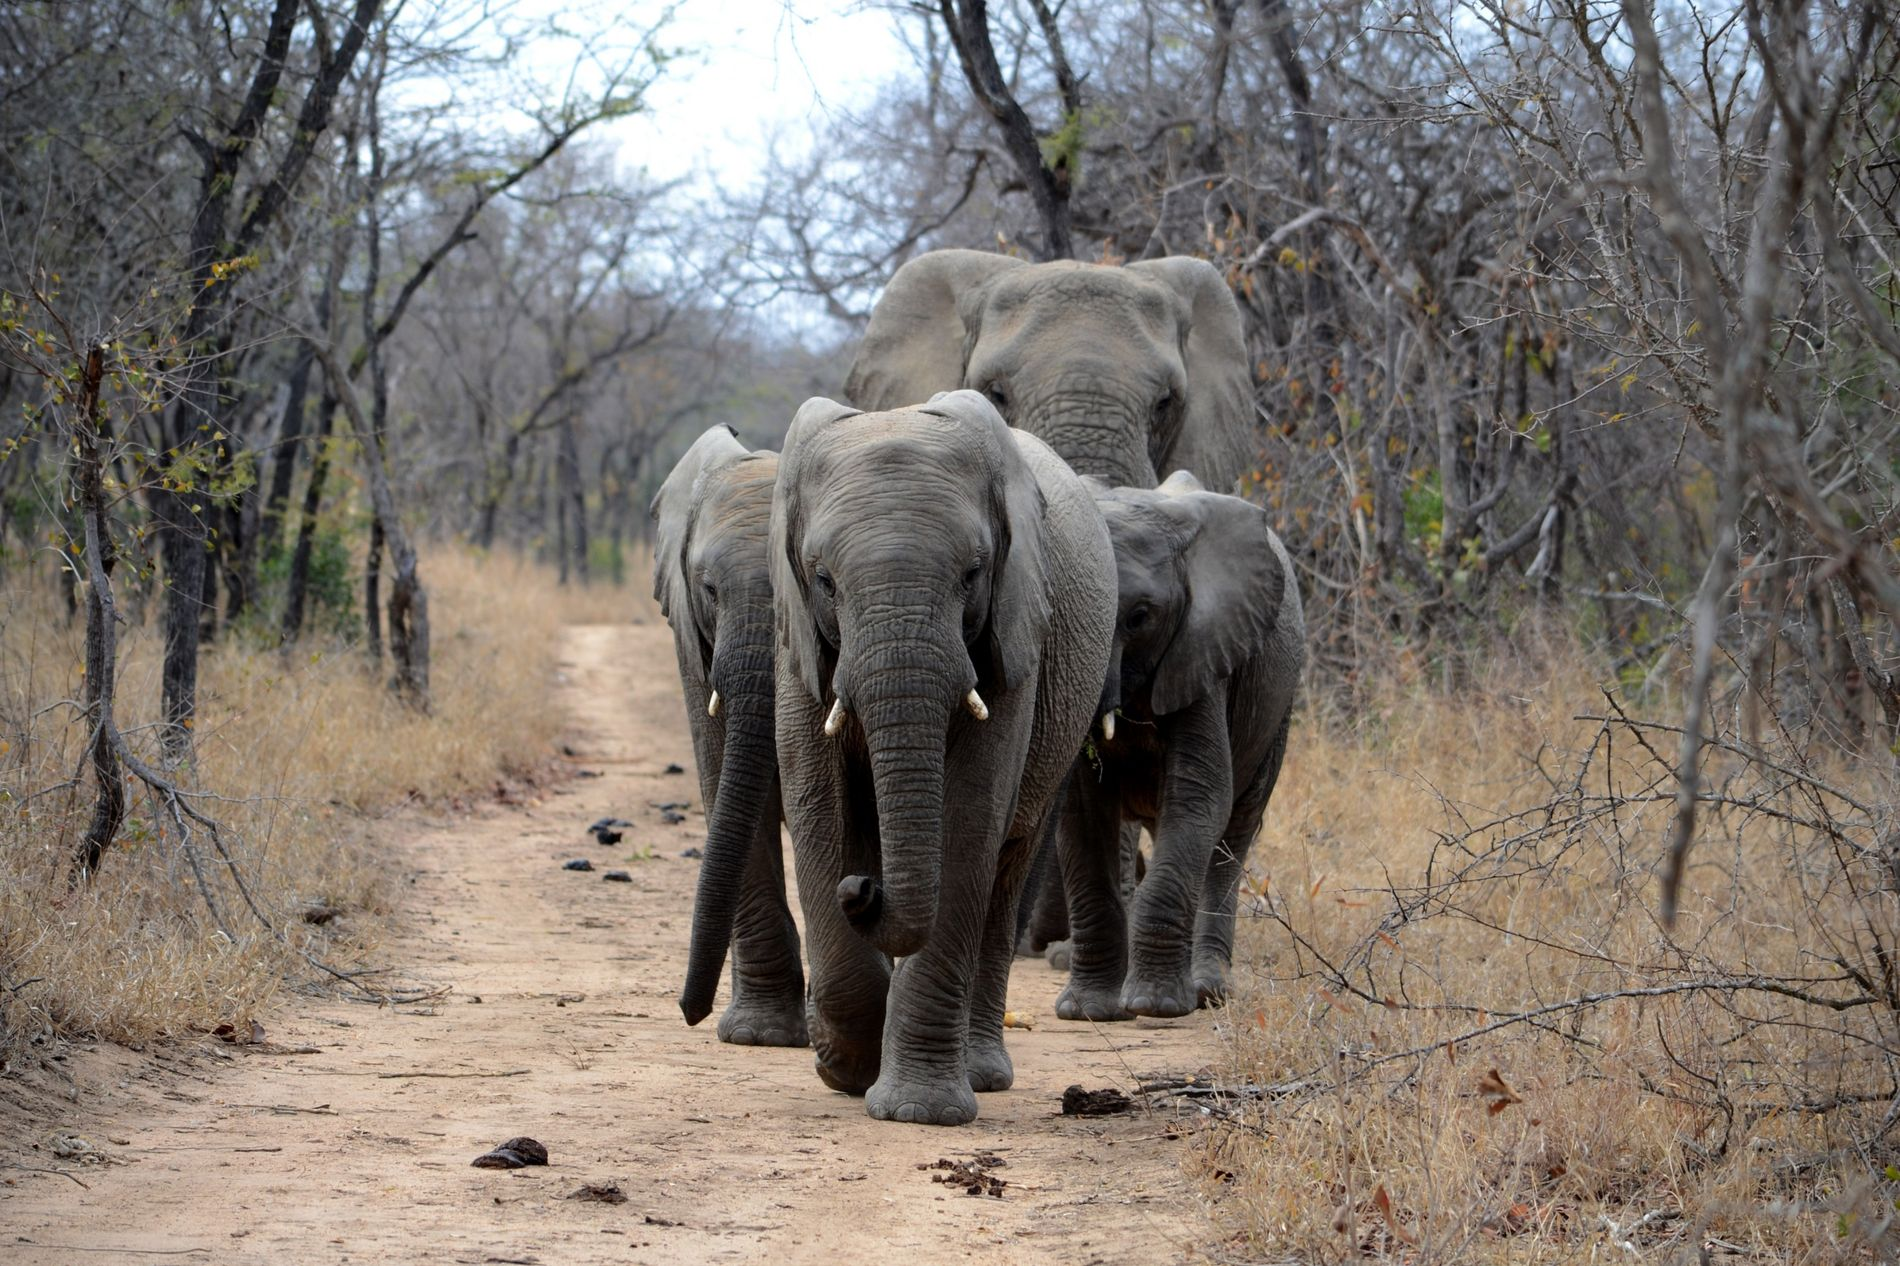 Scientists are using geophones to track the tremors created by elephants. Image by Simon Greenwood, Unsplash